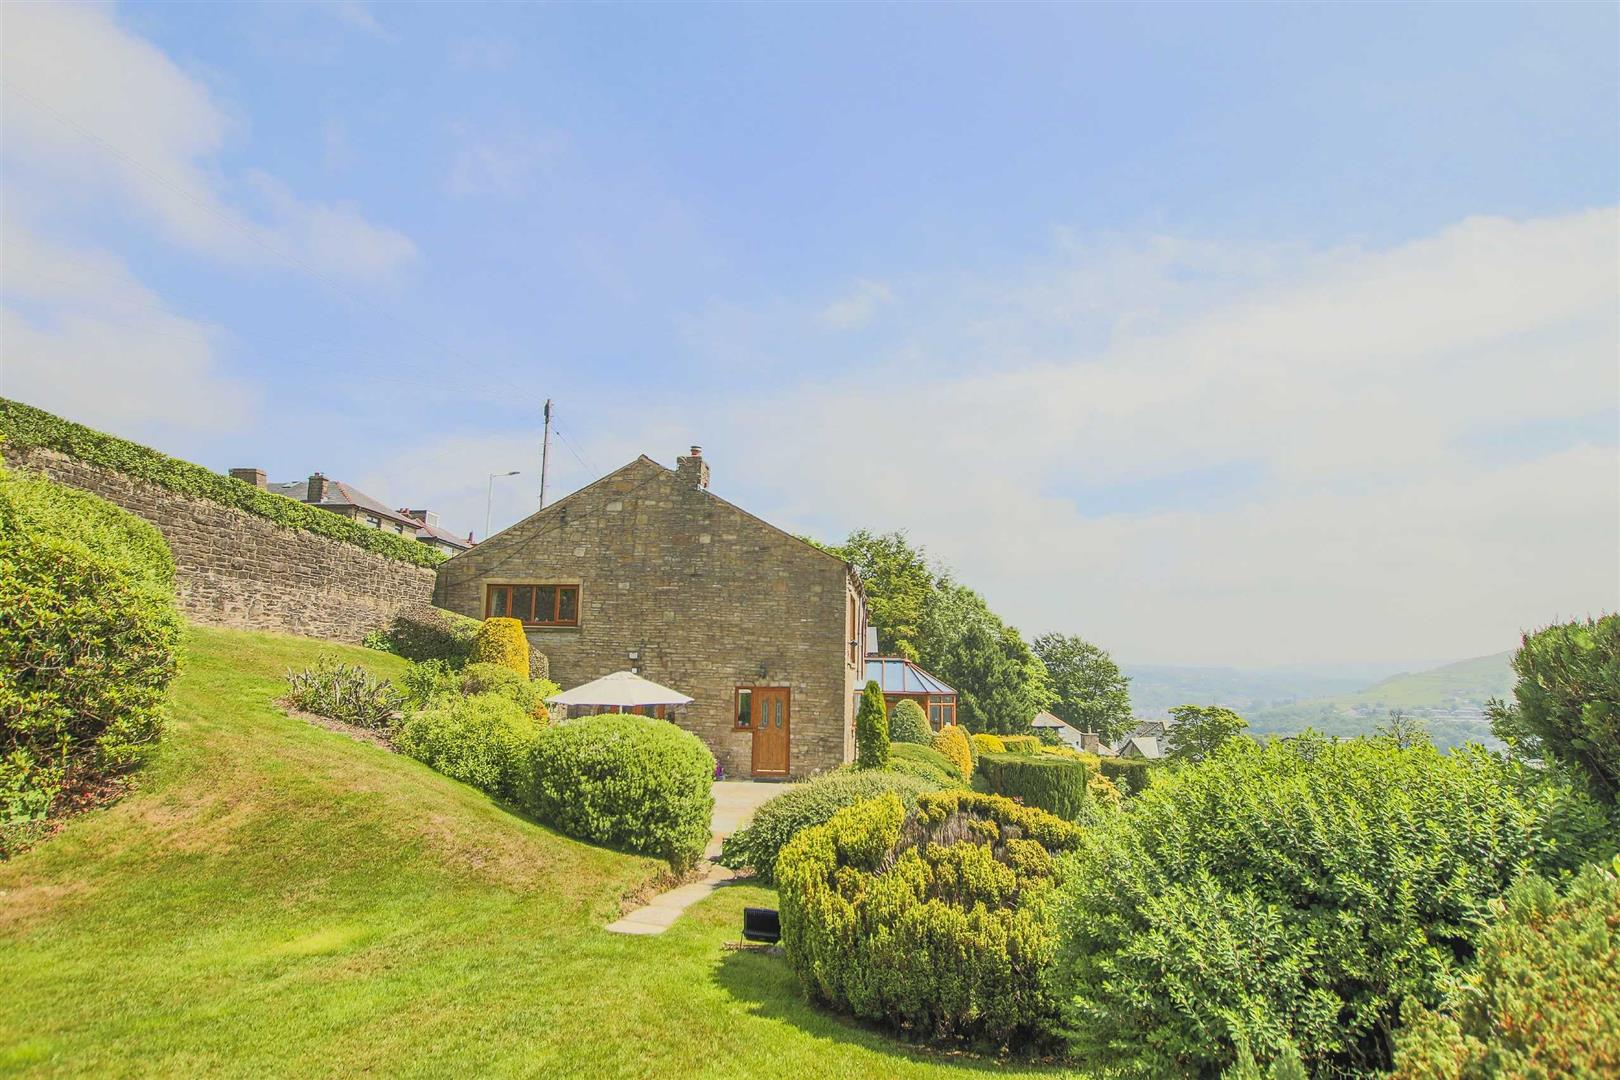 4 Bedroom Barn Conversion For Sale - p033135_52.jpg